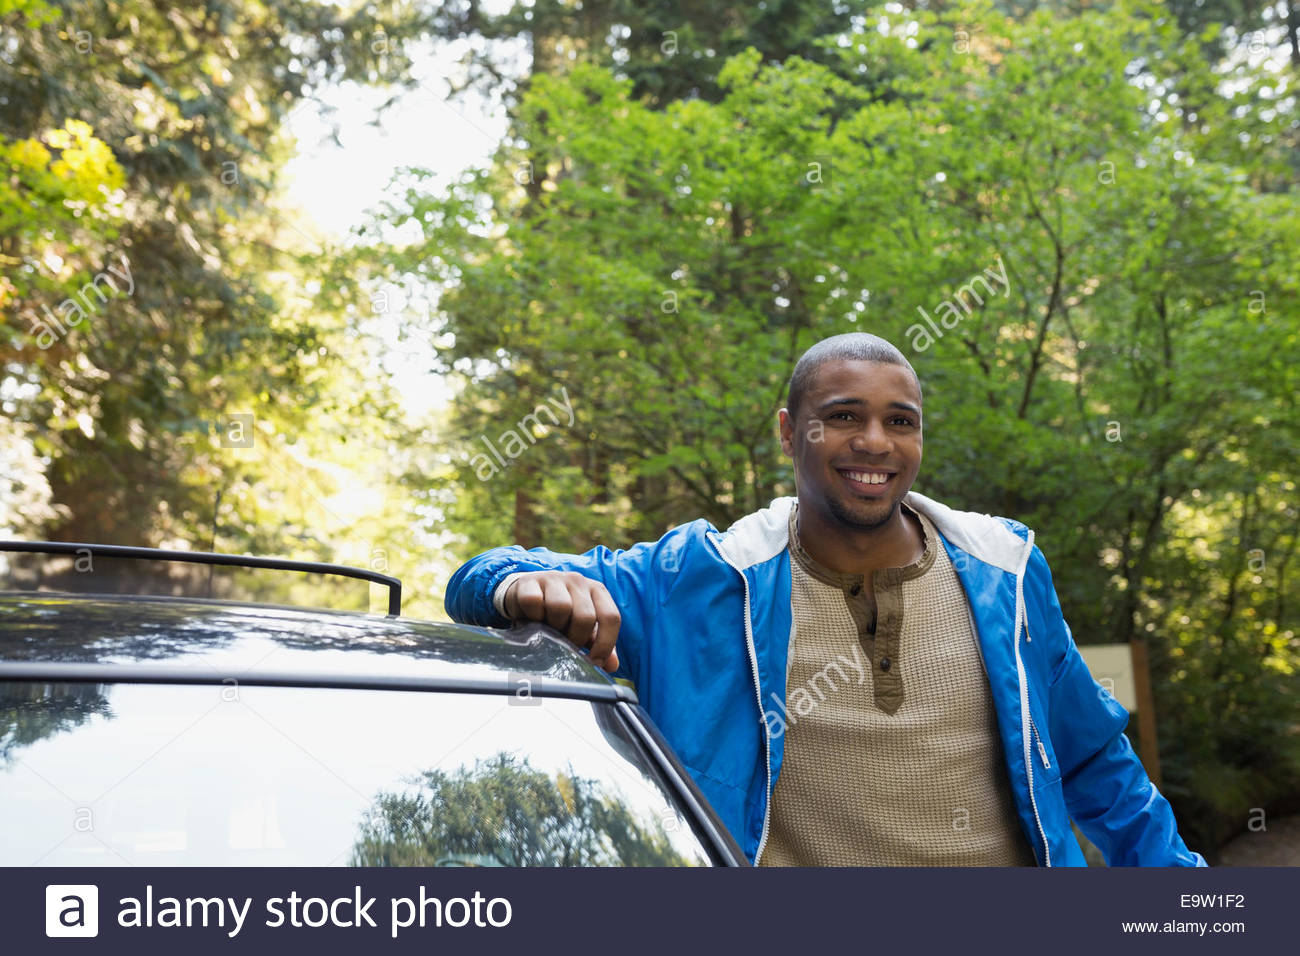 Smiling man leaning against car in woods - Stock Image